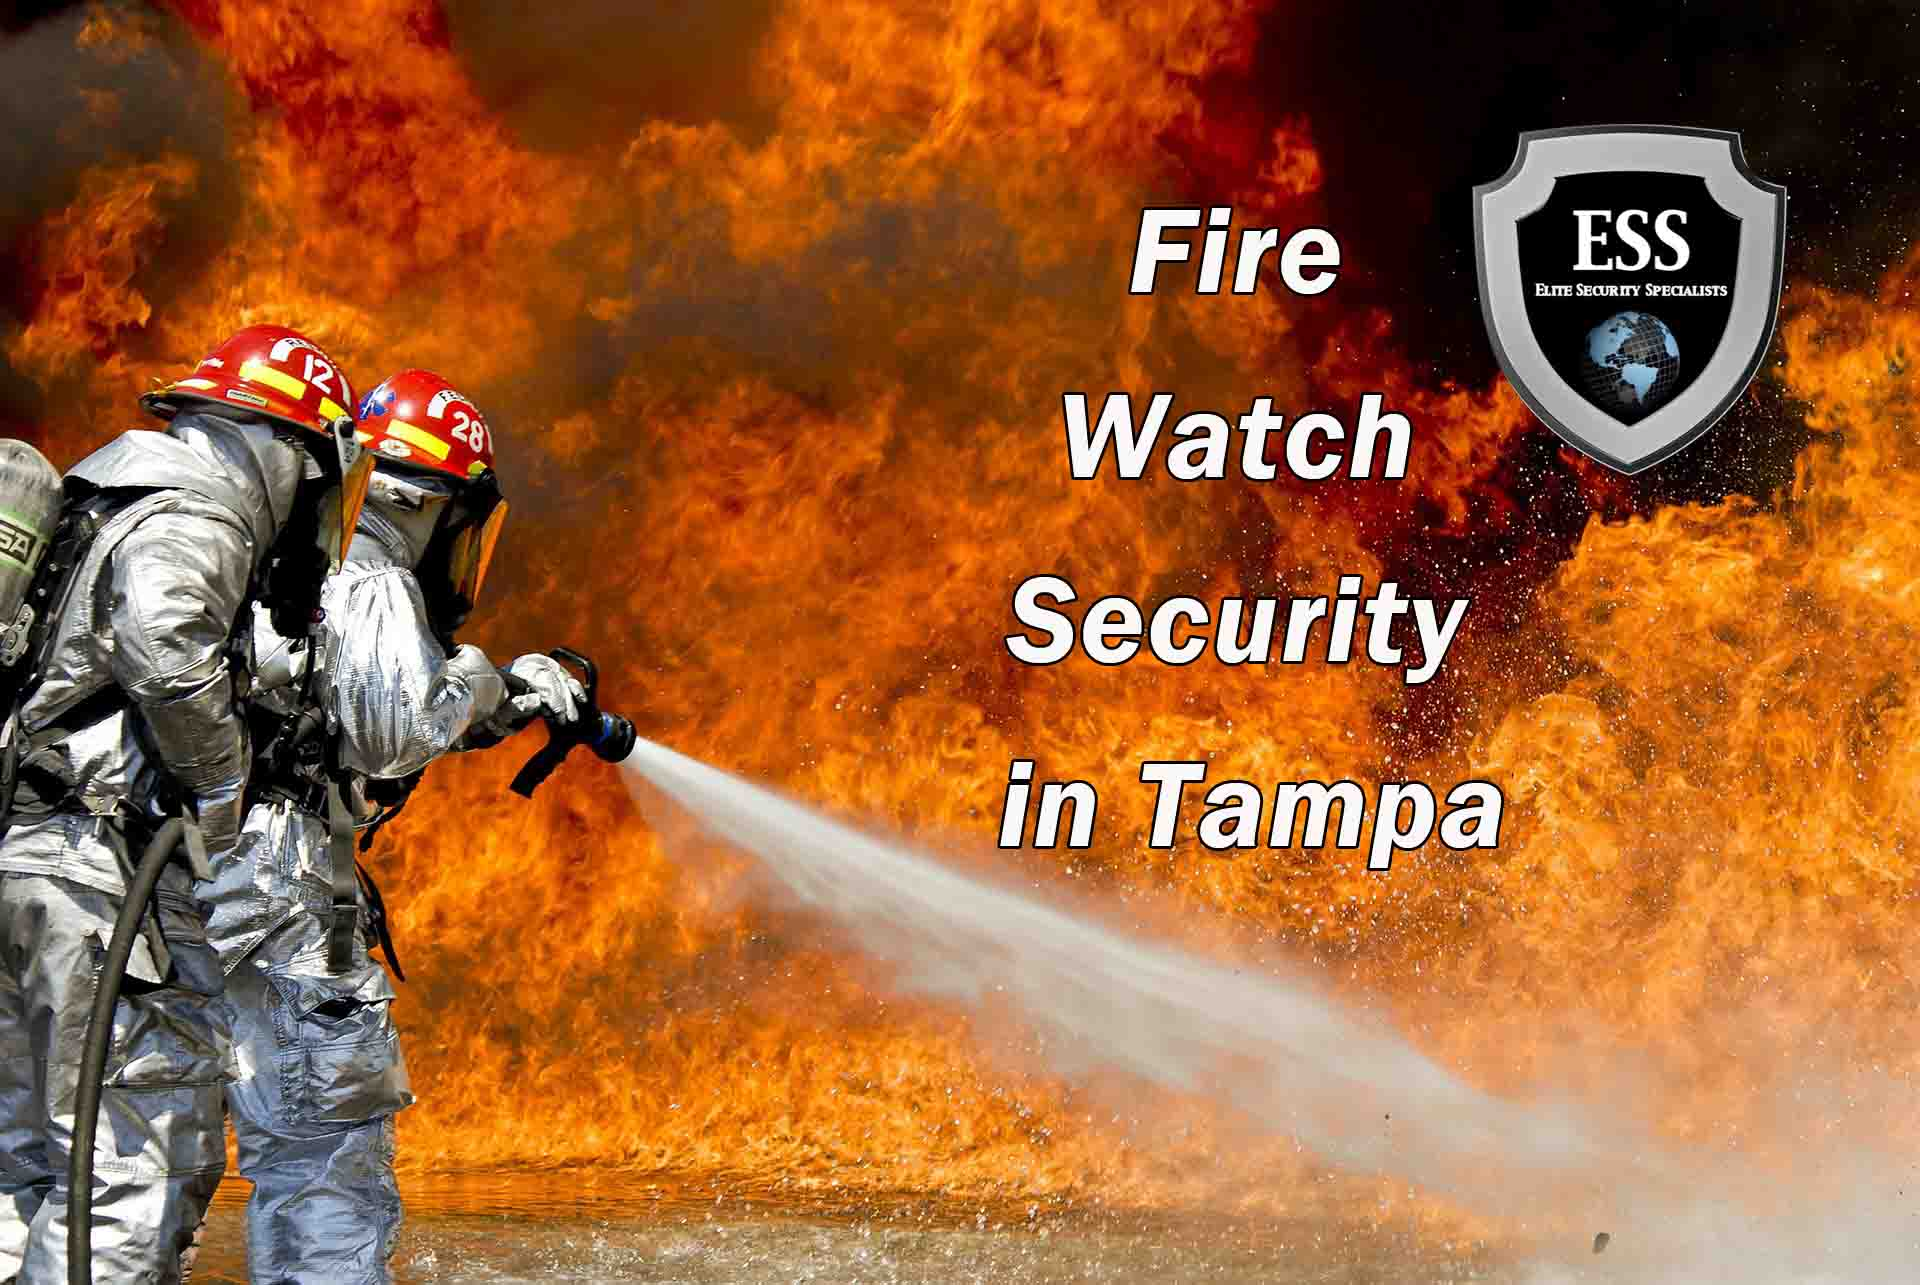 Fire Watch Security in Tampa